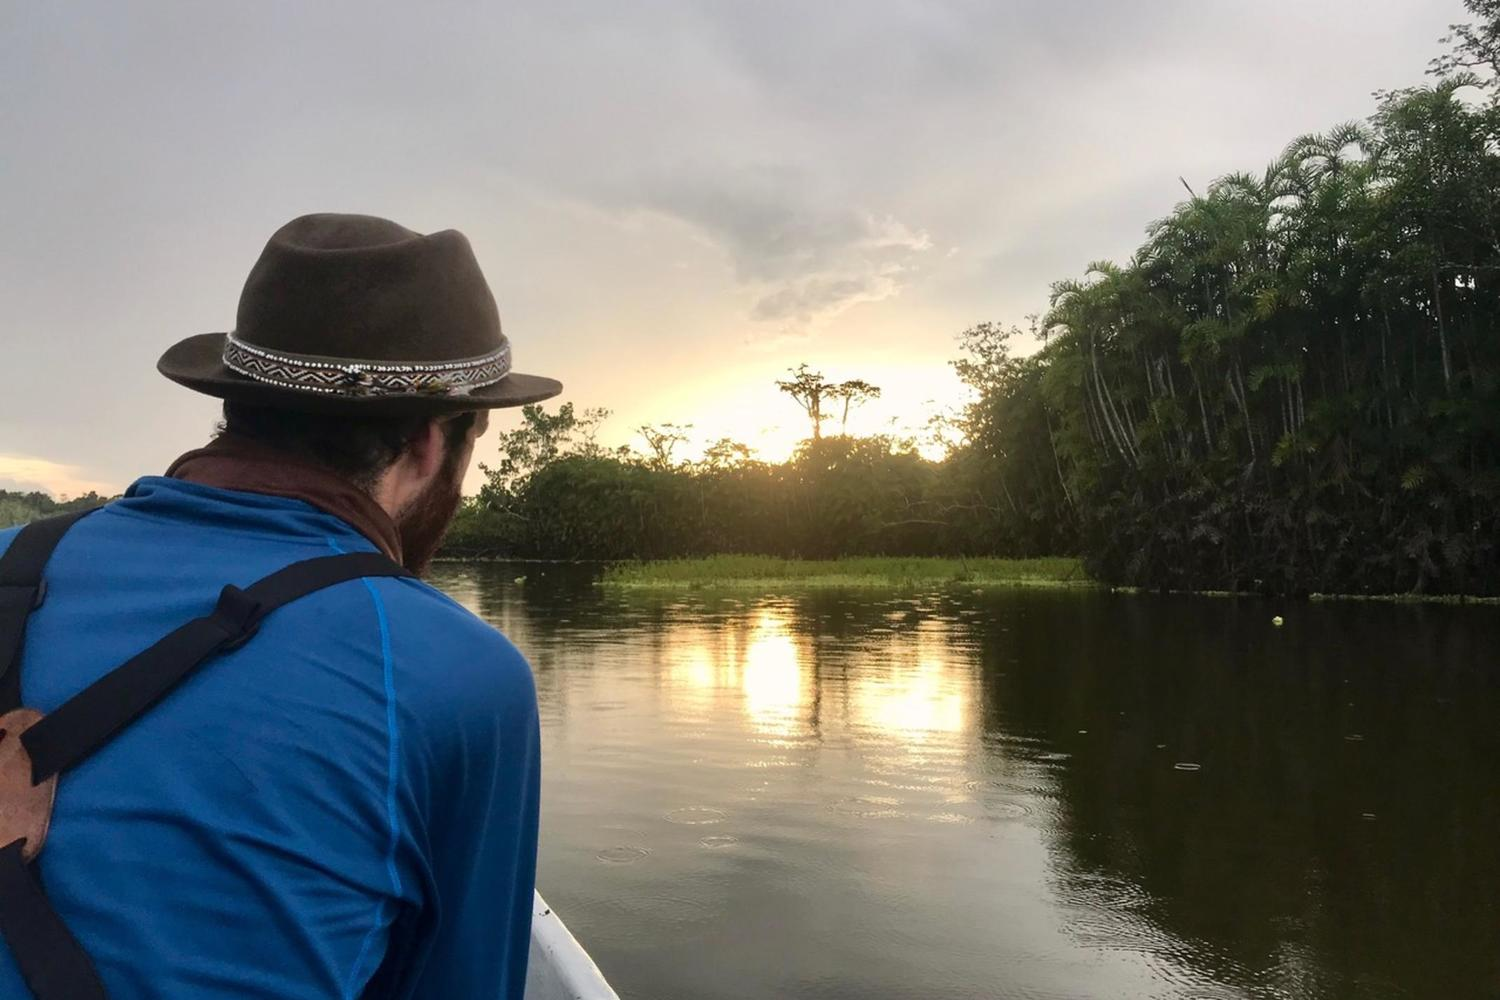 Soaking in the views in the Ecuadorian Amazon Rainforest